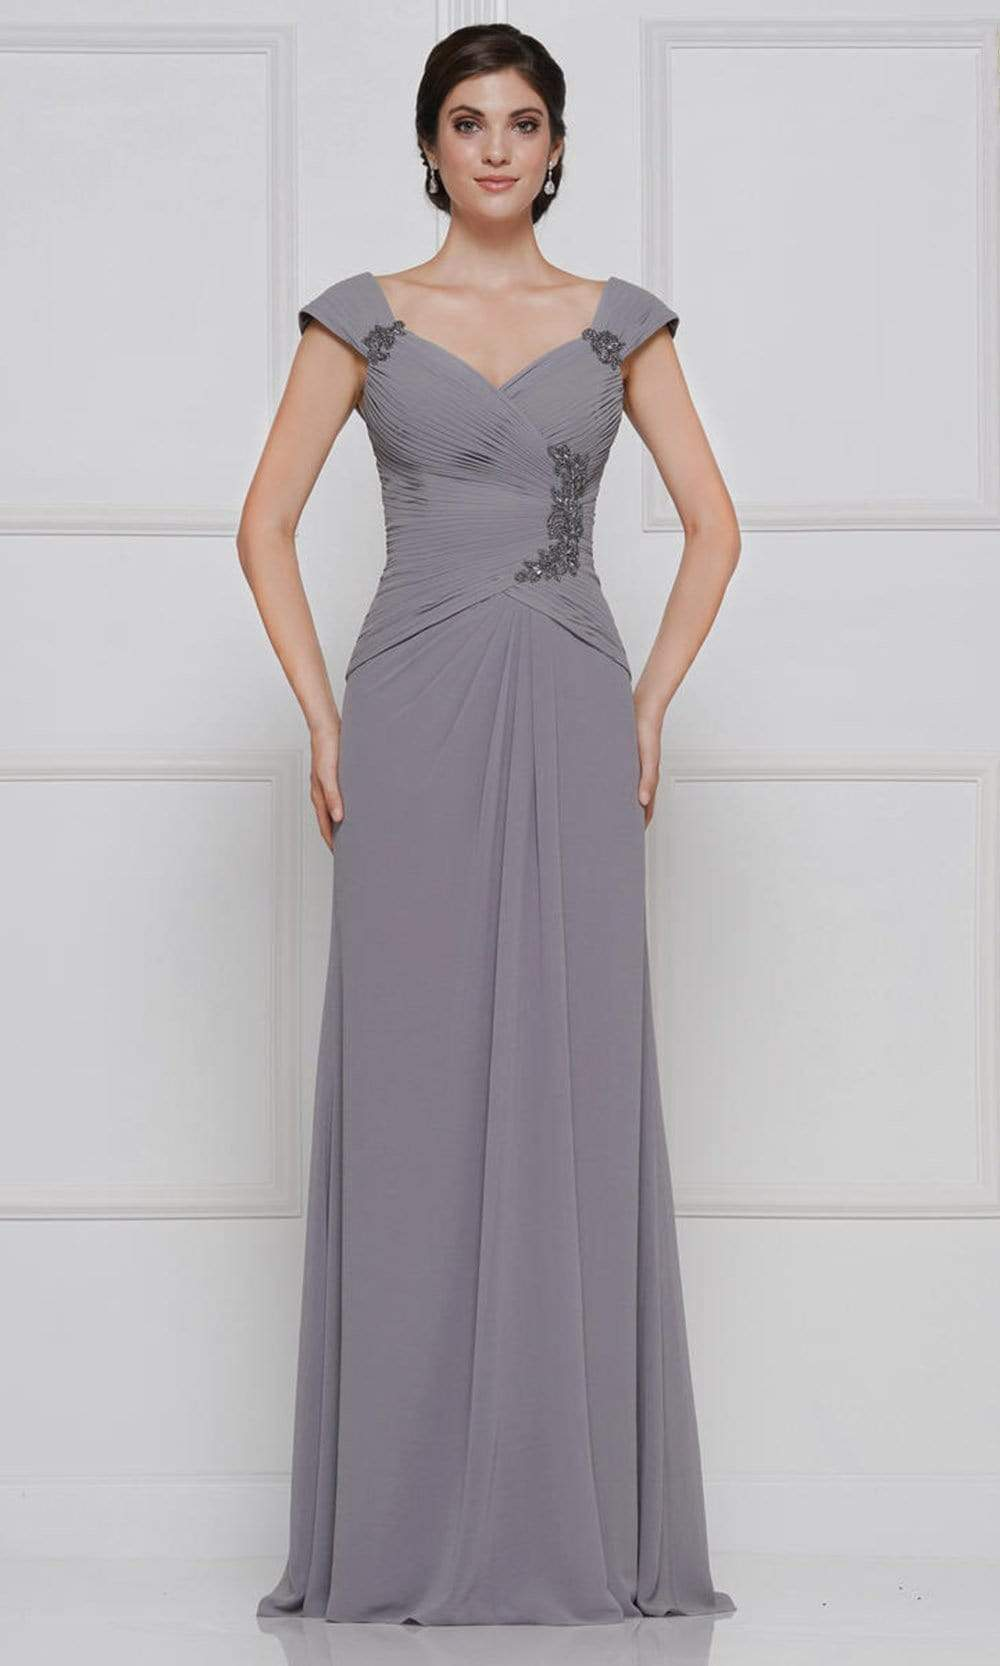 Rina Di Montella - RD2633 Embroidered V Neck Sheath Dress Mother of the Bride Dresses